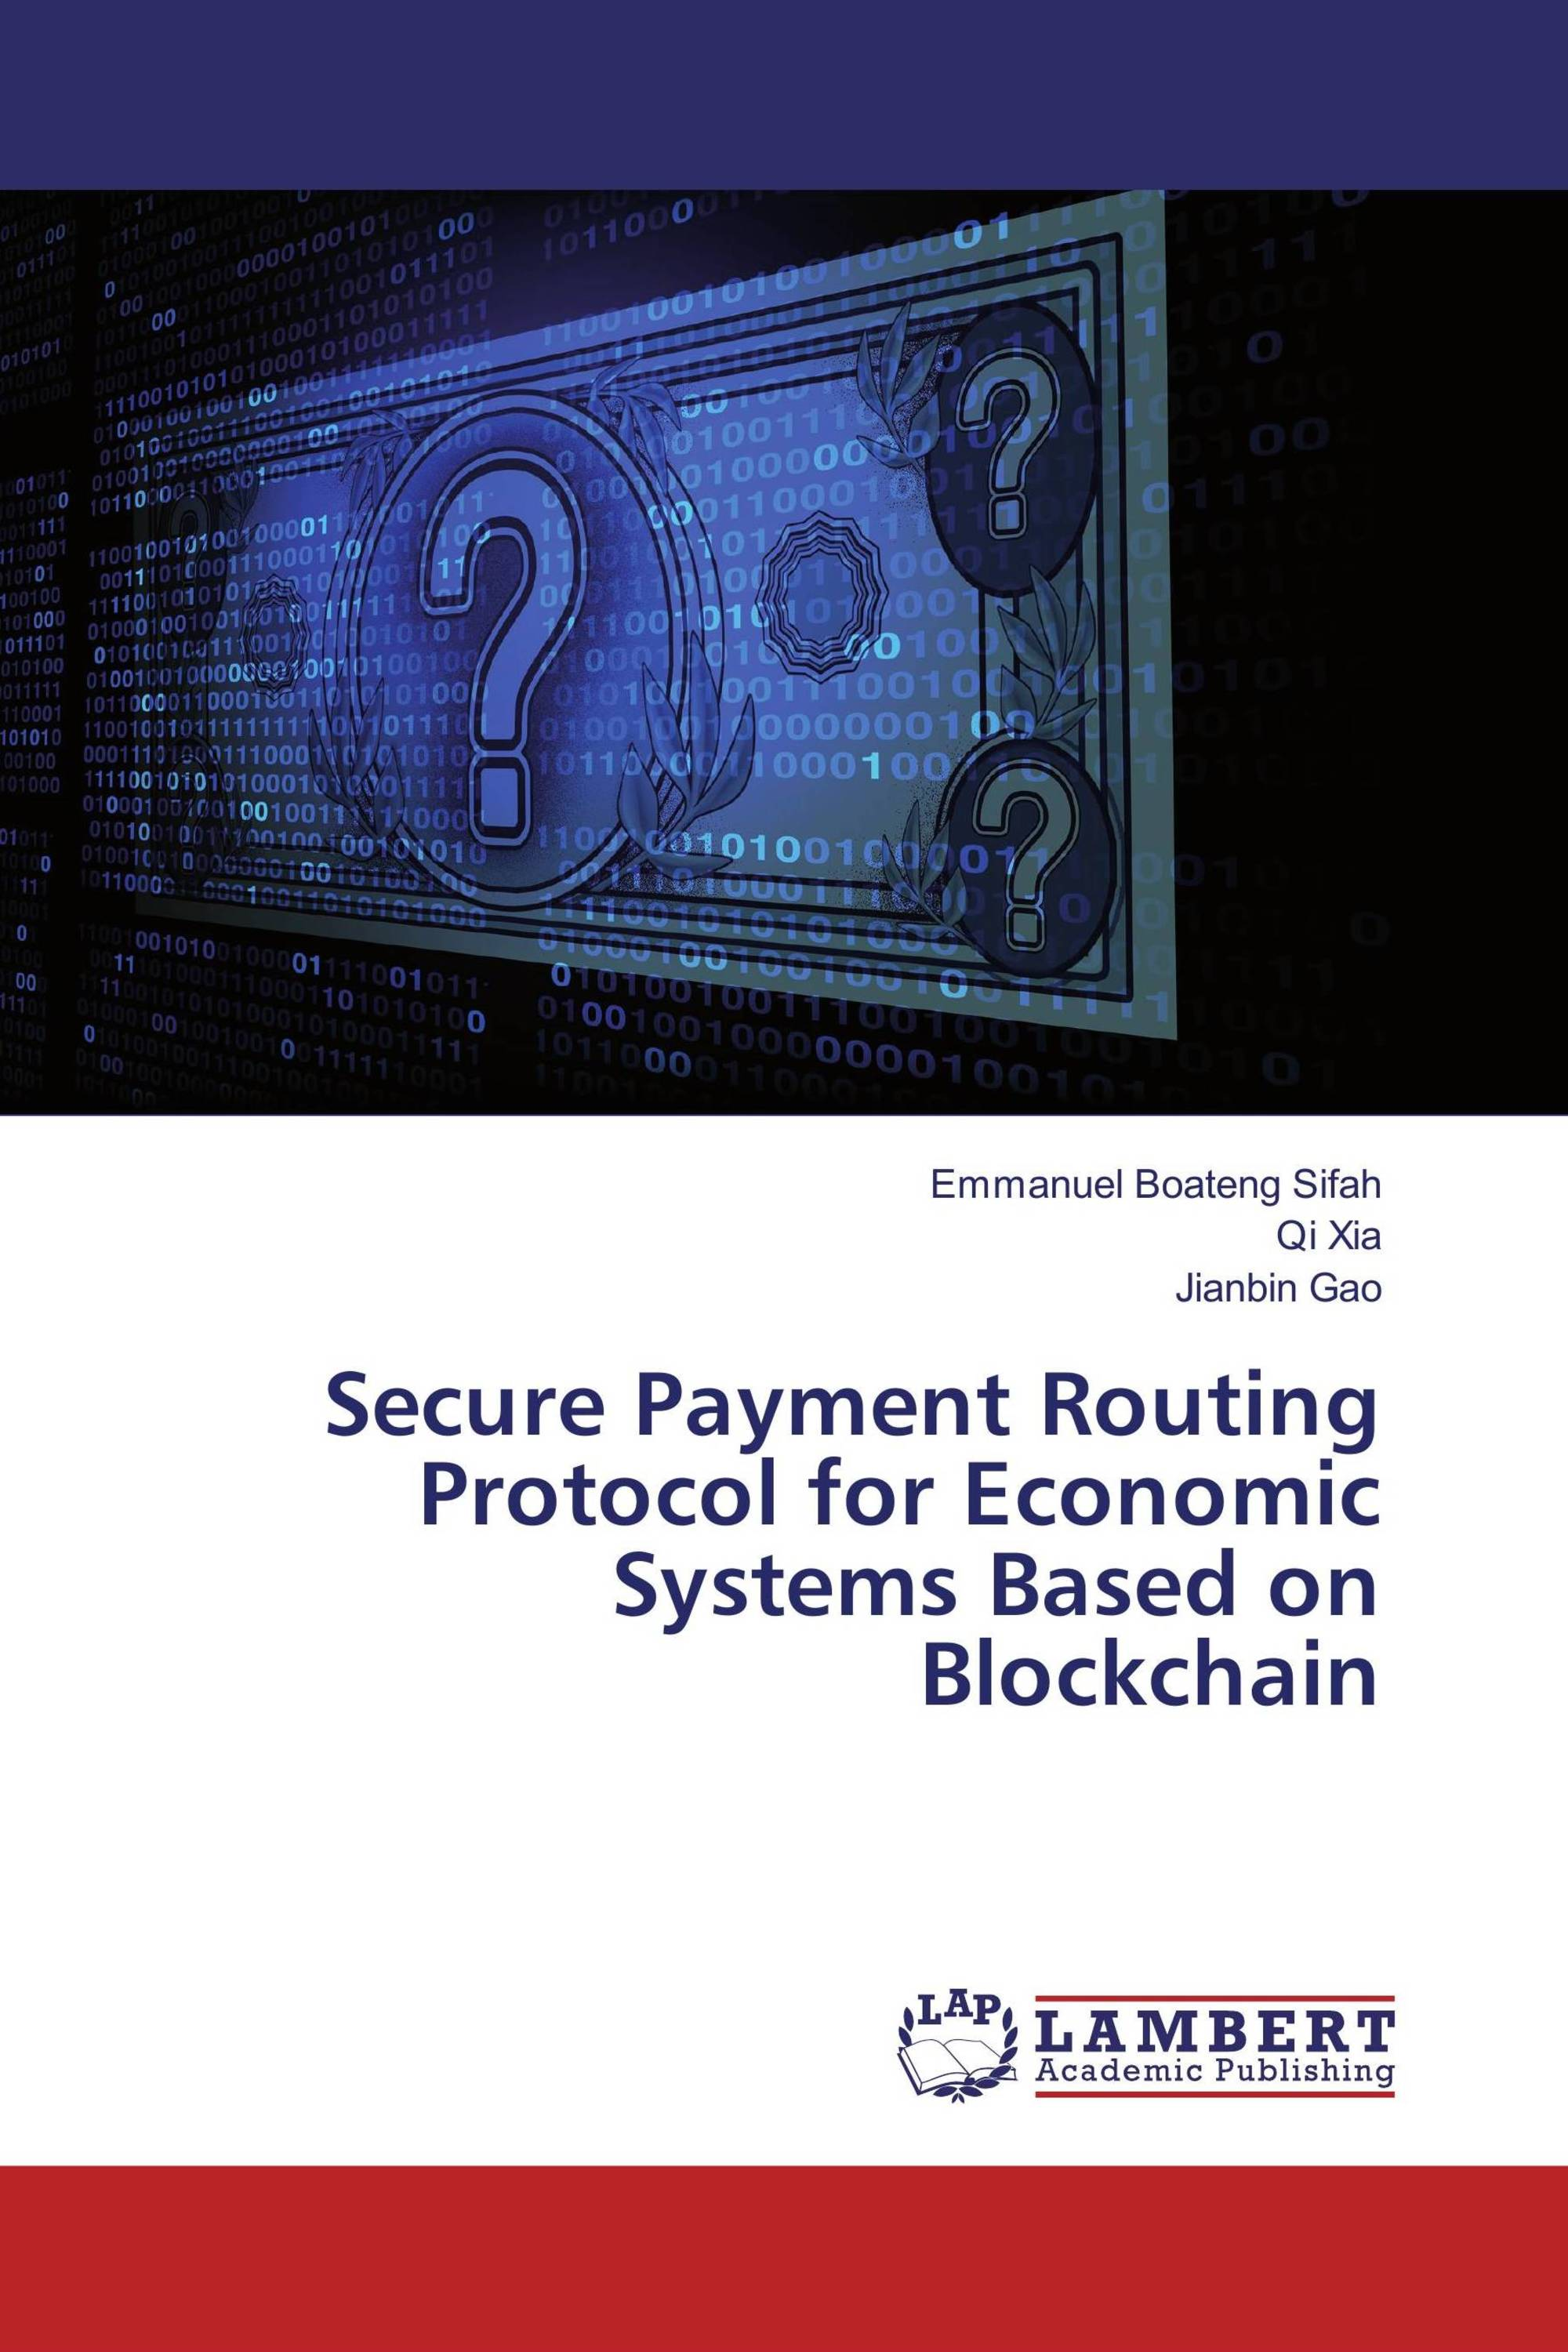 Secure Payment Routing Protocol for Economic Systems Based on Blockchain